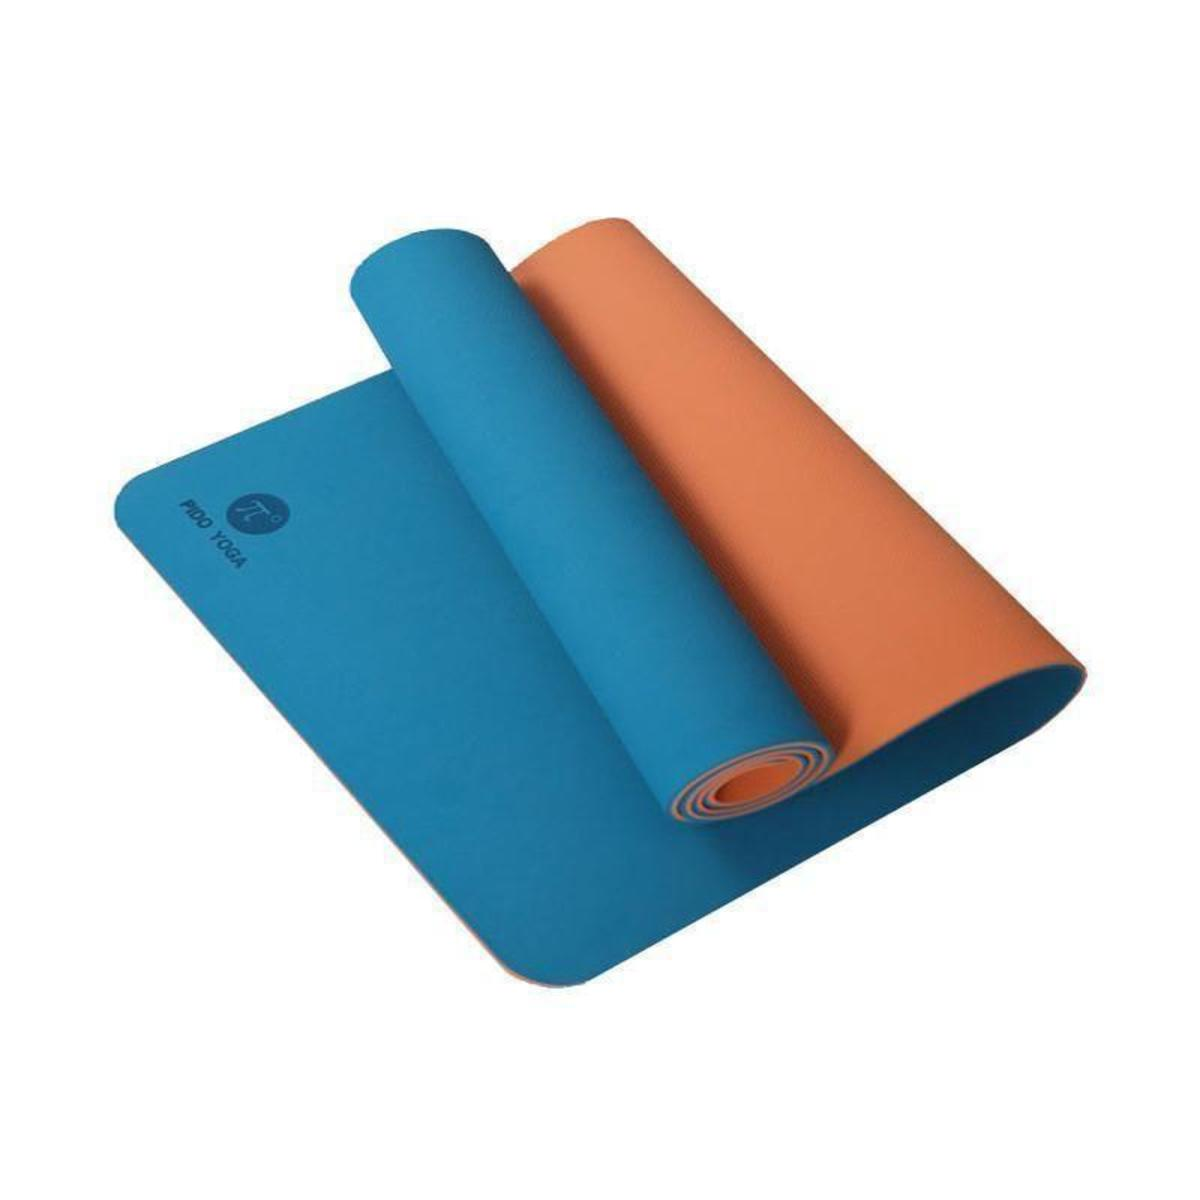 Suchprice® PIDO-01 6mm non-slip yoga mat (4 models) with storage bag + strap - Light blue/orange